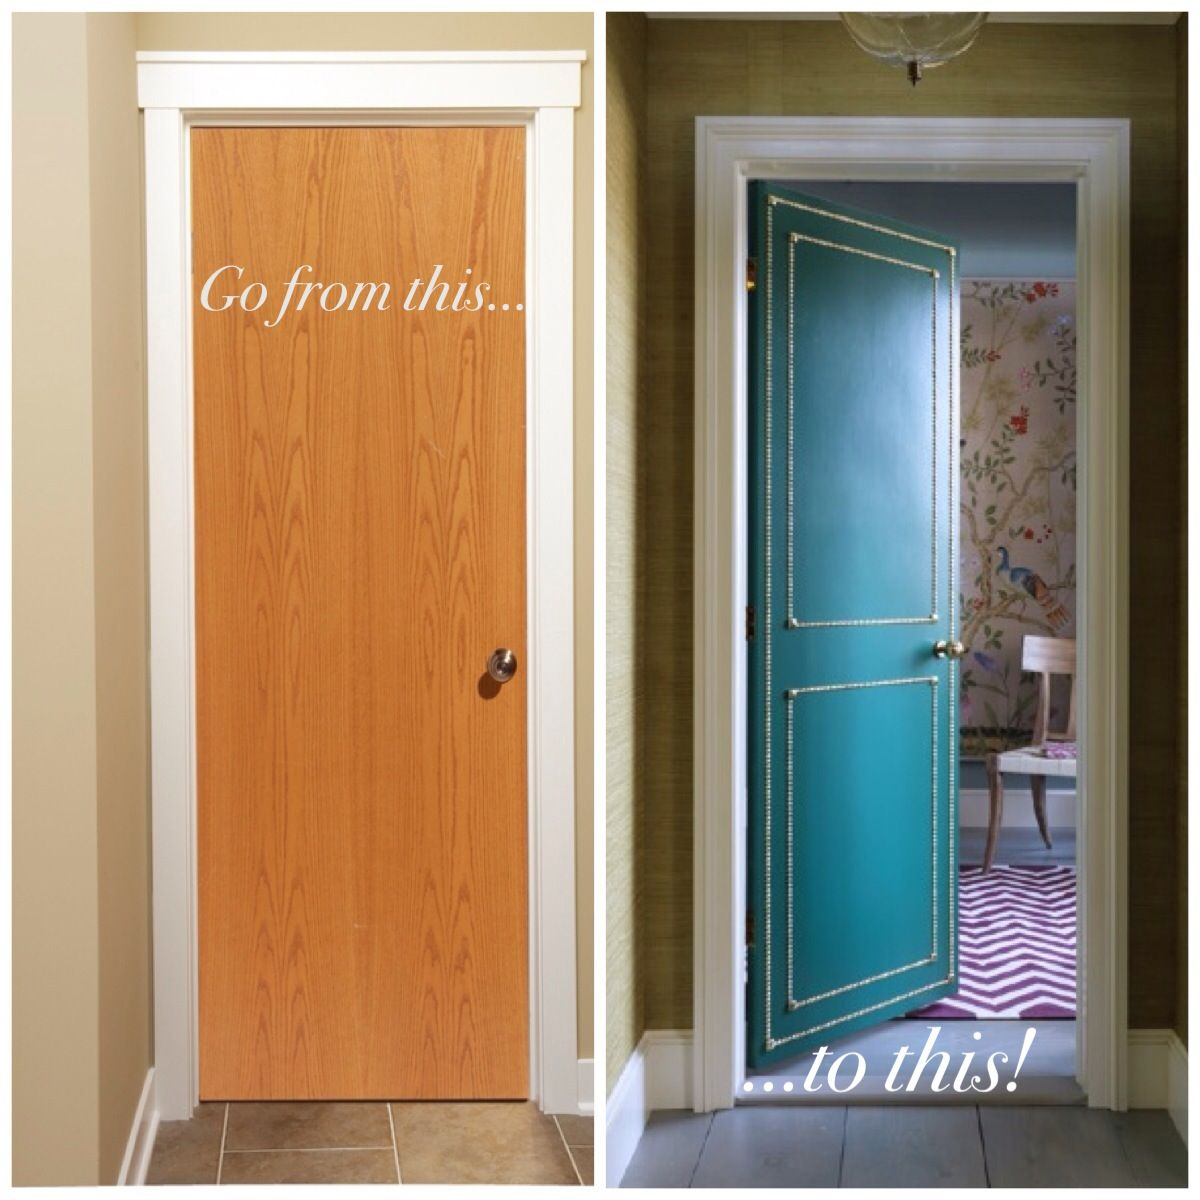 Diy do you have boring ugly flat interior doors why for Interior trim and door color ideas